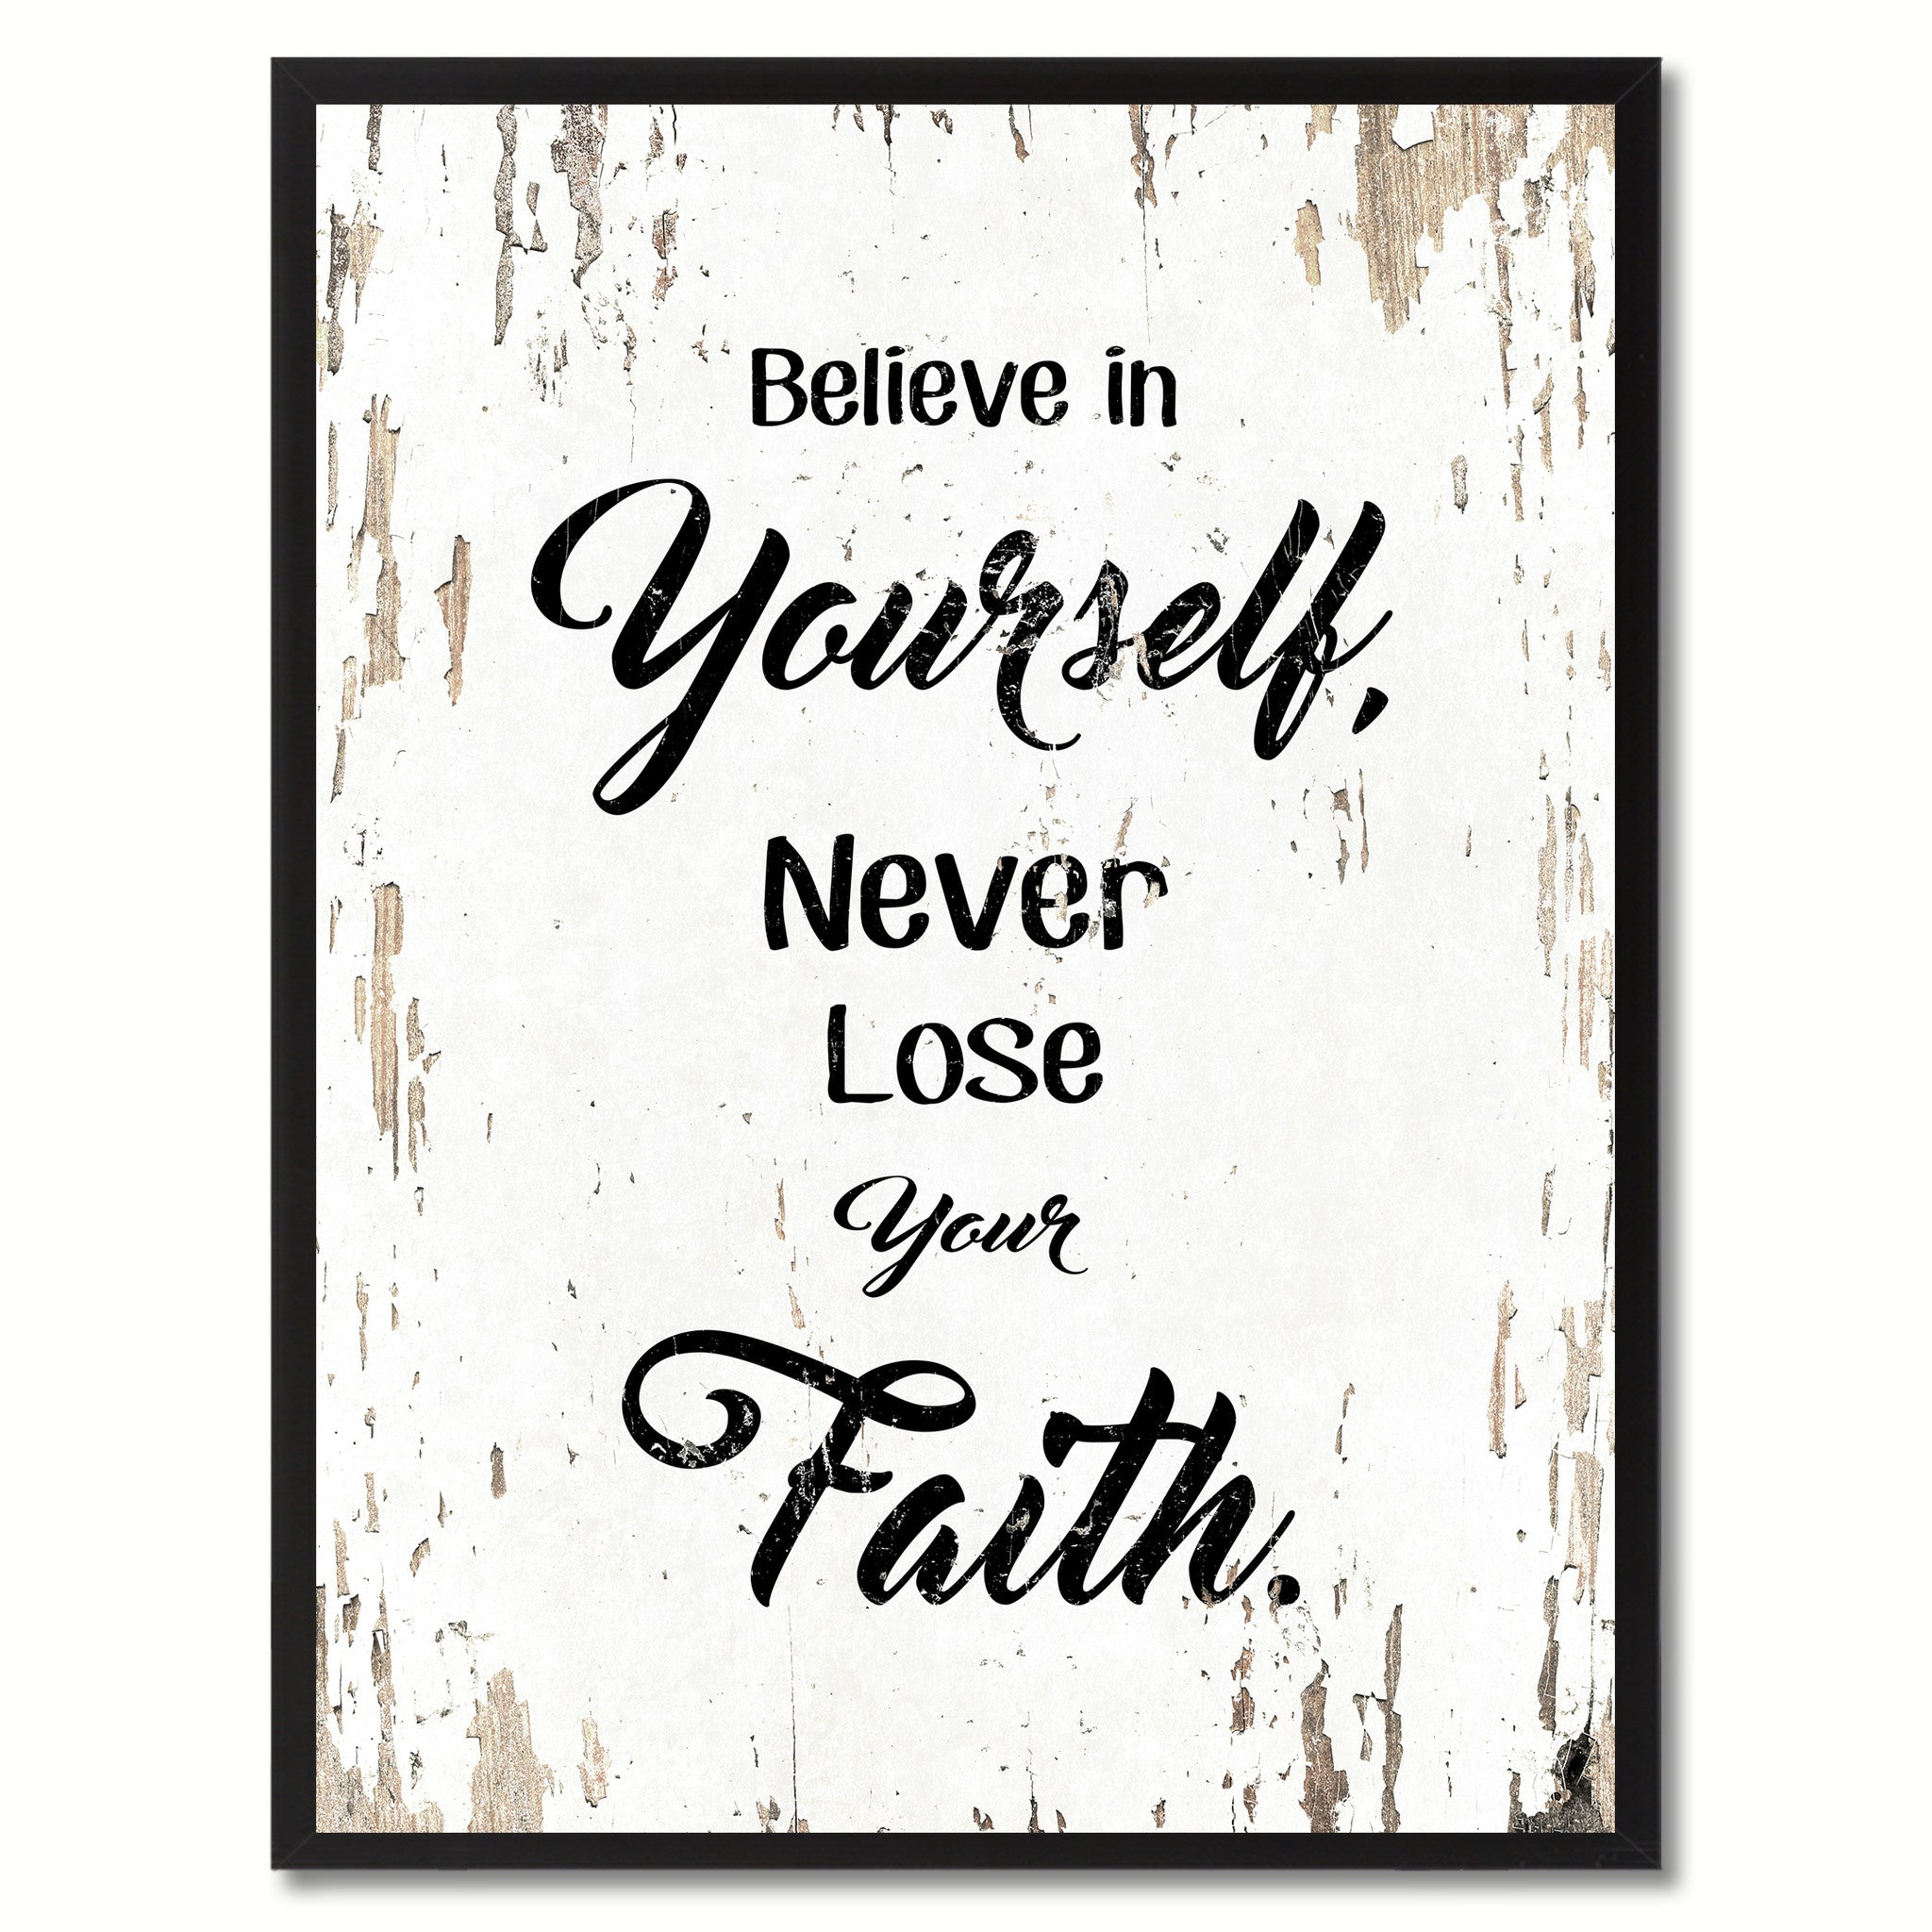 Believe in yourself never lose your faith Inspirational Quote Saying Gift Ideas Home Decor Wall Art